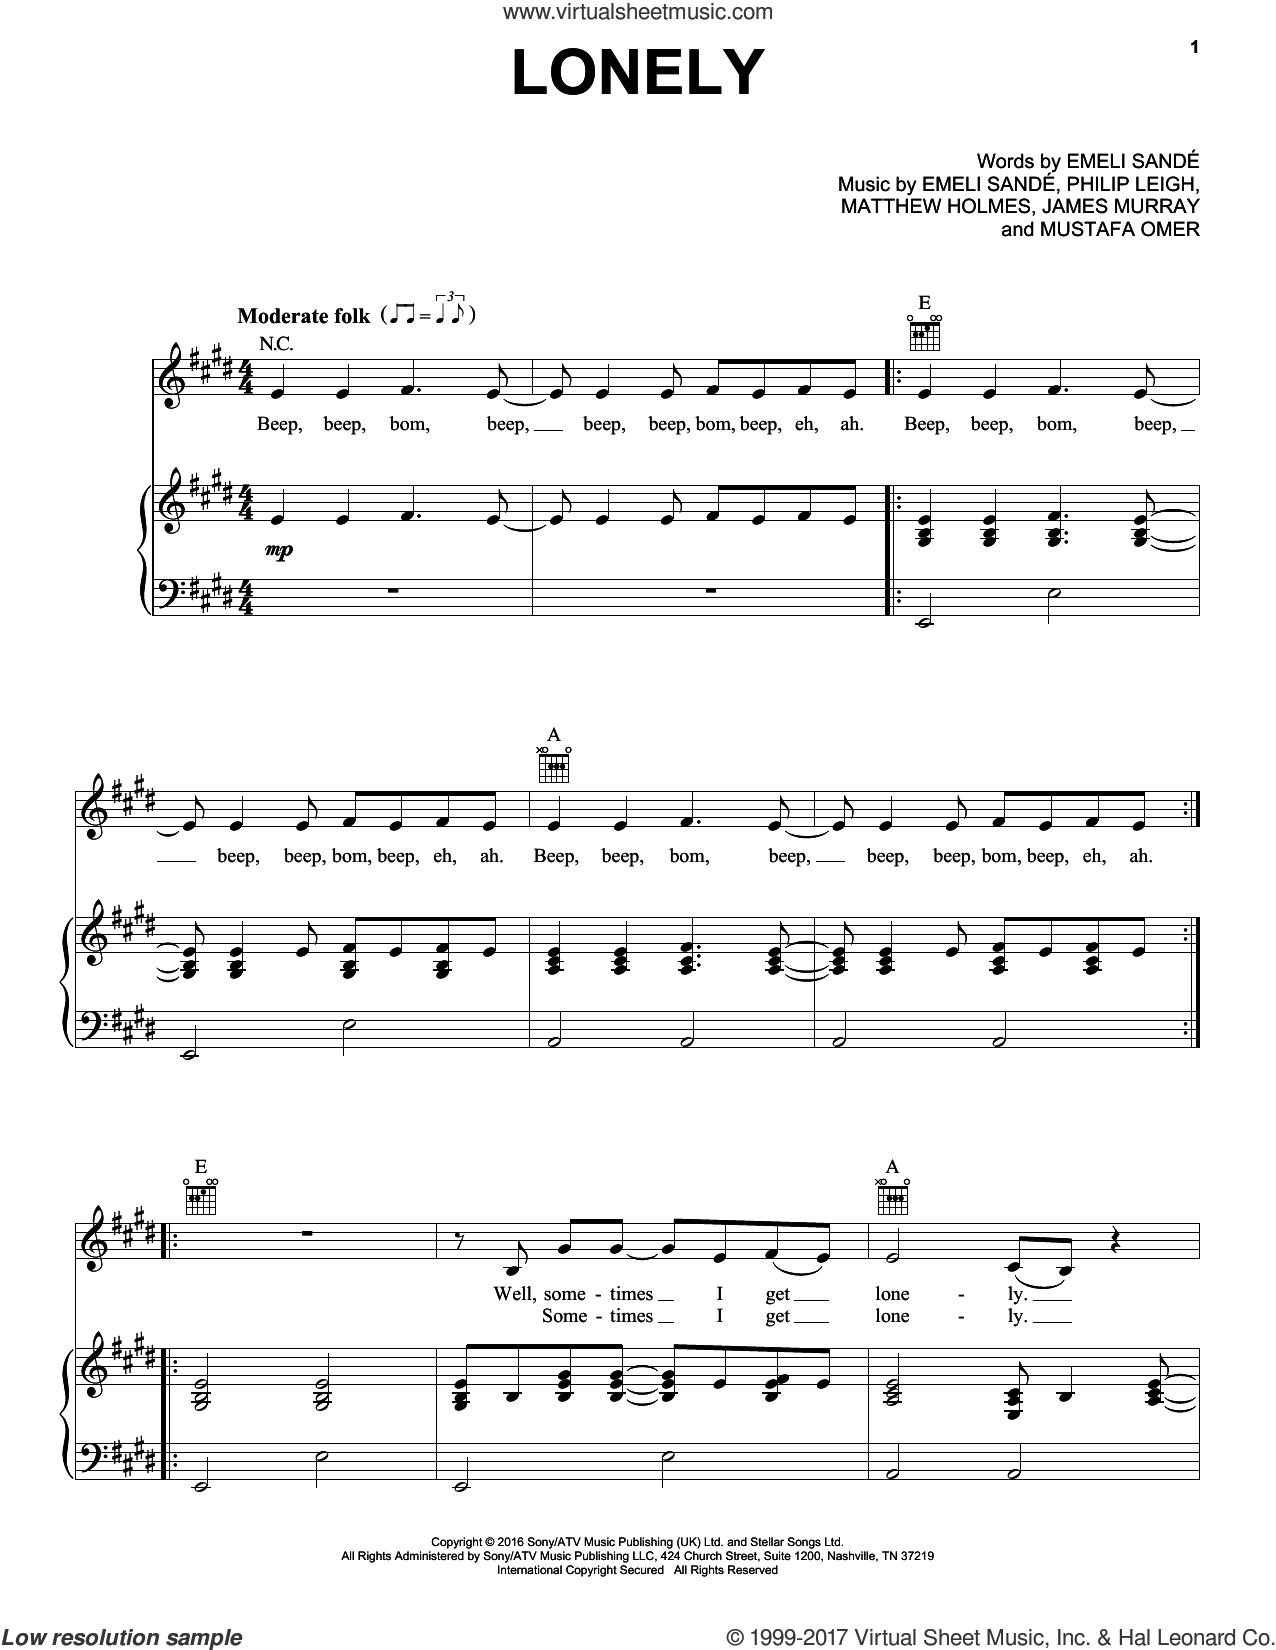 Lonely sheet music for voice, piano or guitar by Emeli Sande, James Murray, Matthew Holmes, Mustafa Omer and Philip Leigh, intermediate skill level